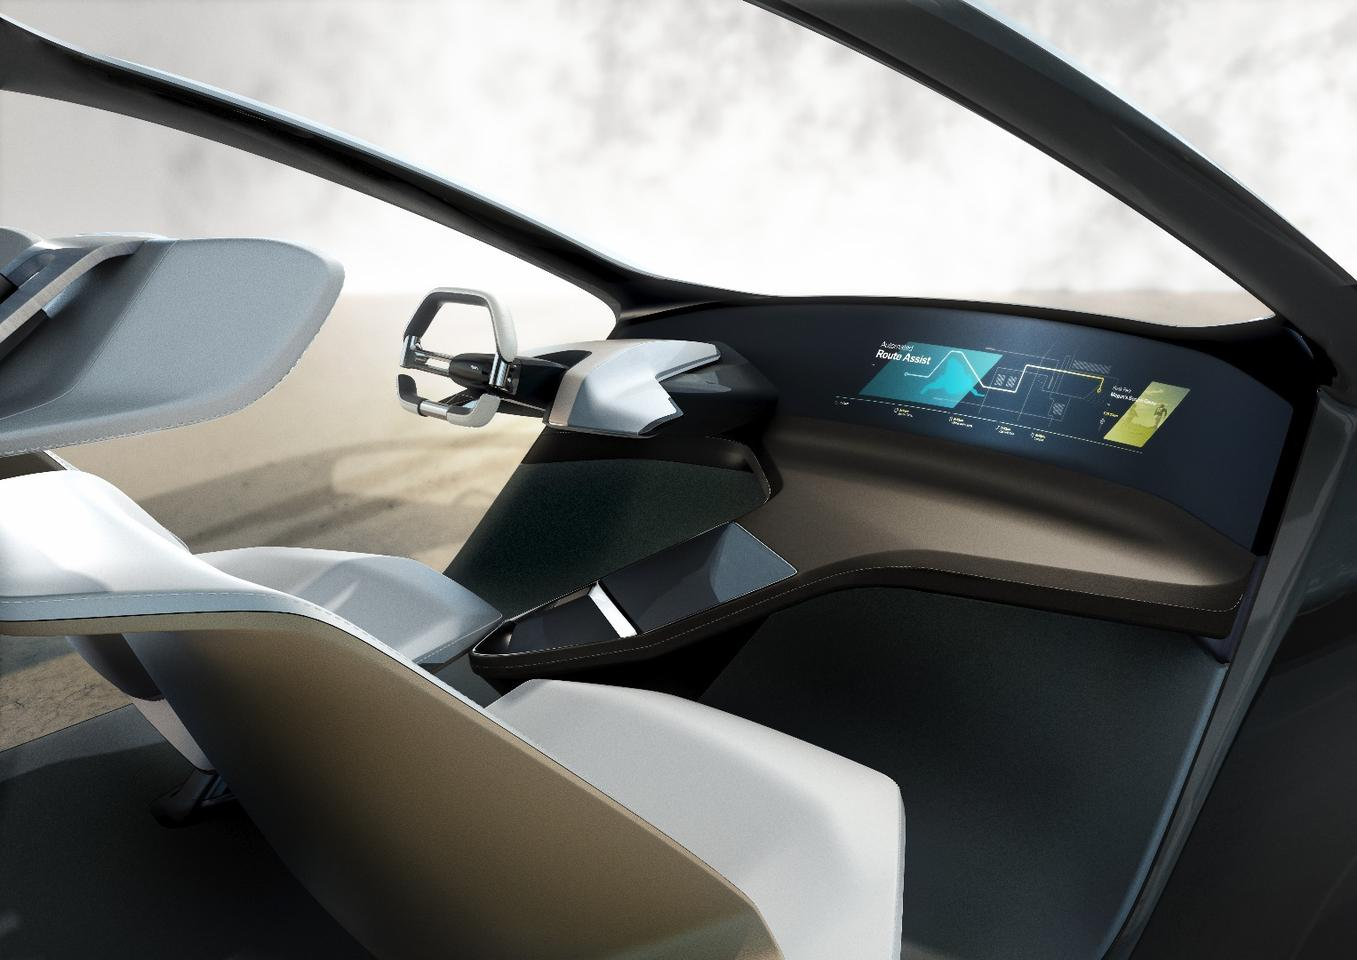 The way BMW is envisioning the concept for the i Inside Future is somewhere in the interim between fully automated driving (at all times) and partially automated driving wherein the car can drive itself in many situations, but not all of them